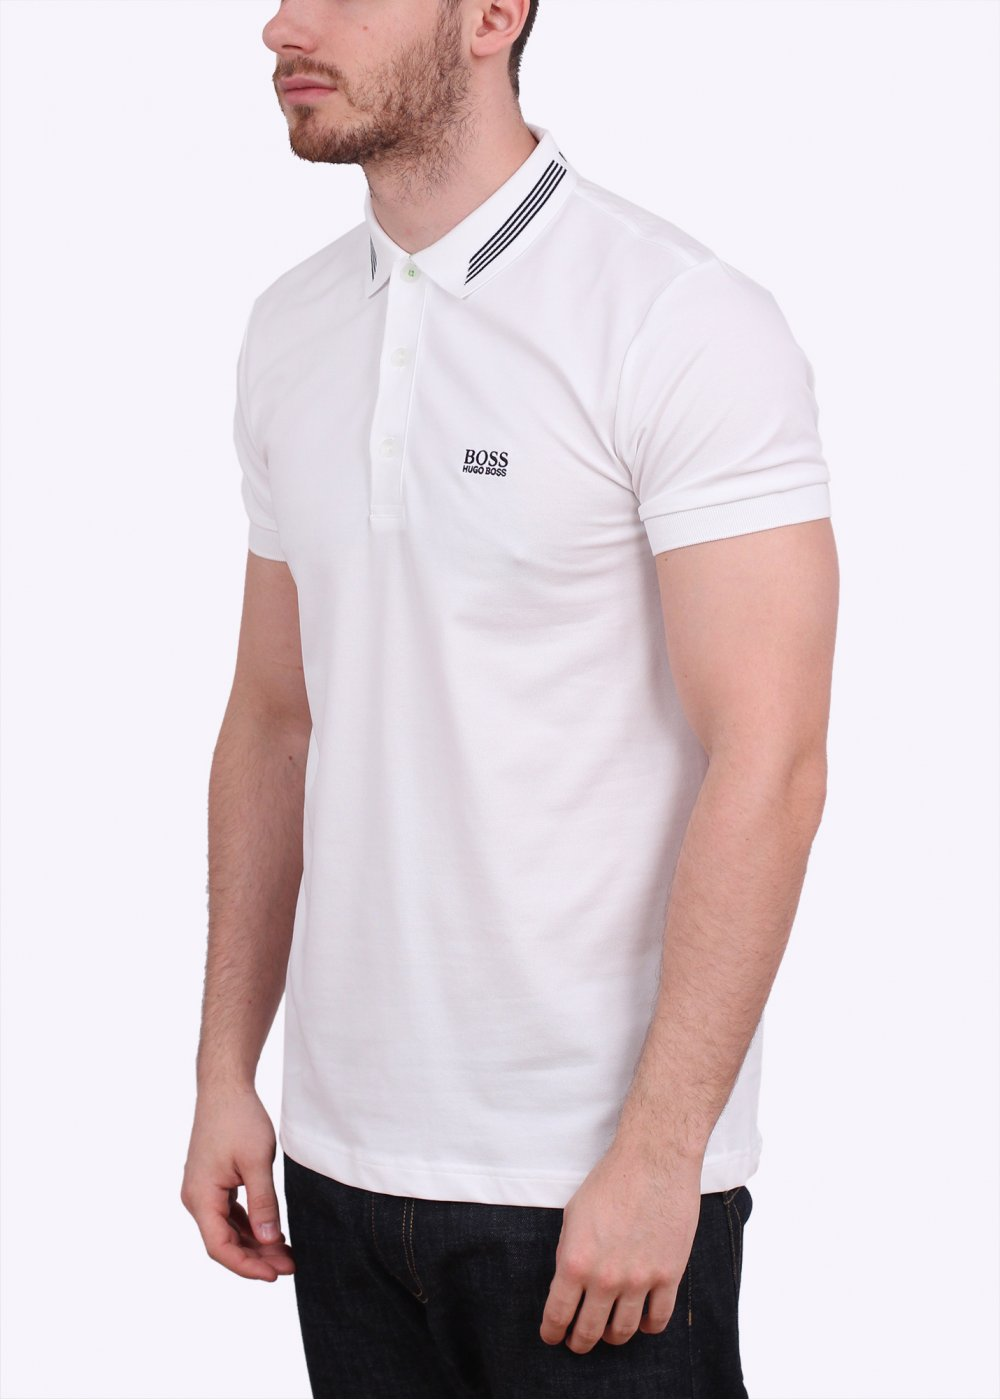 Hugo boss green paule polo shirt white for Hugo boss green polo shirt sale